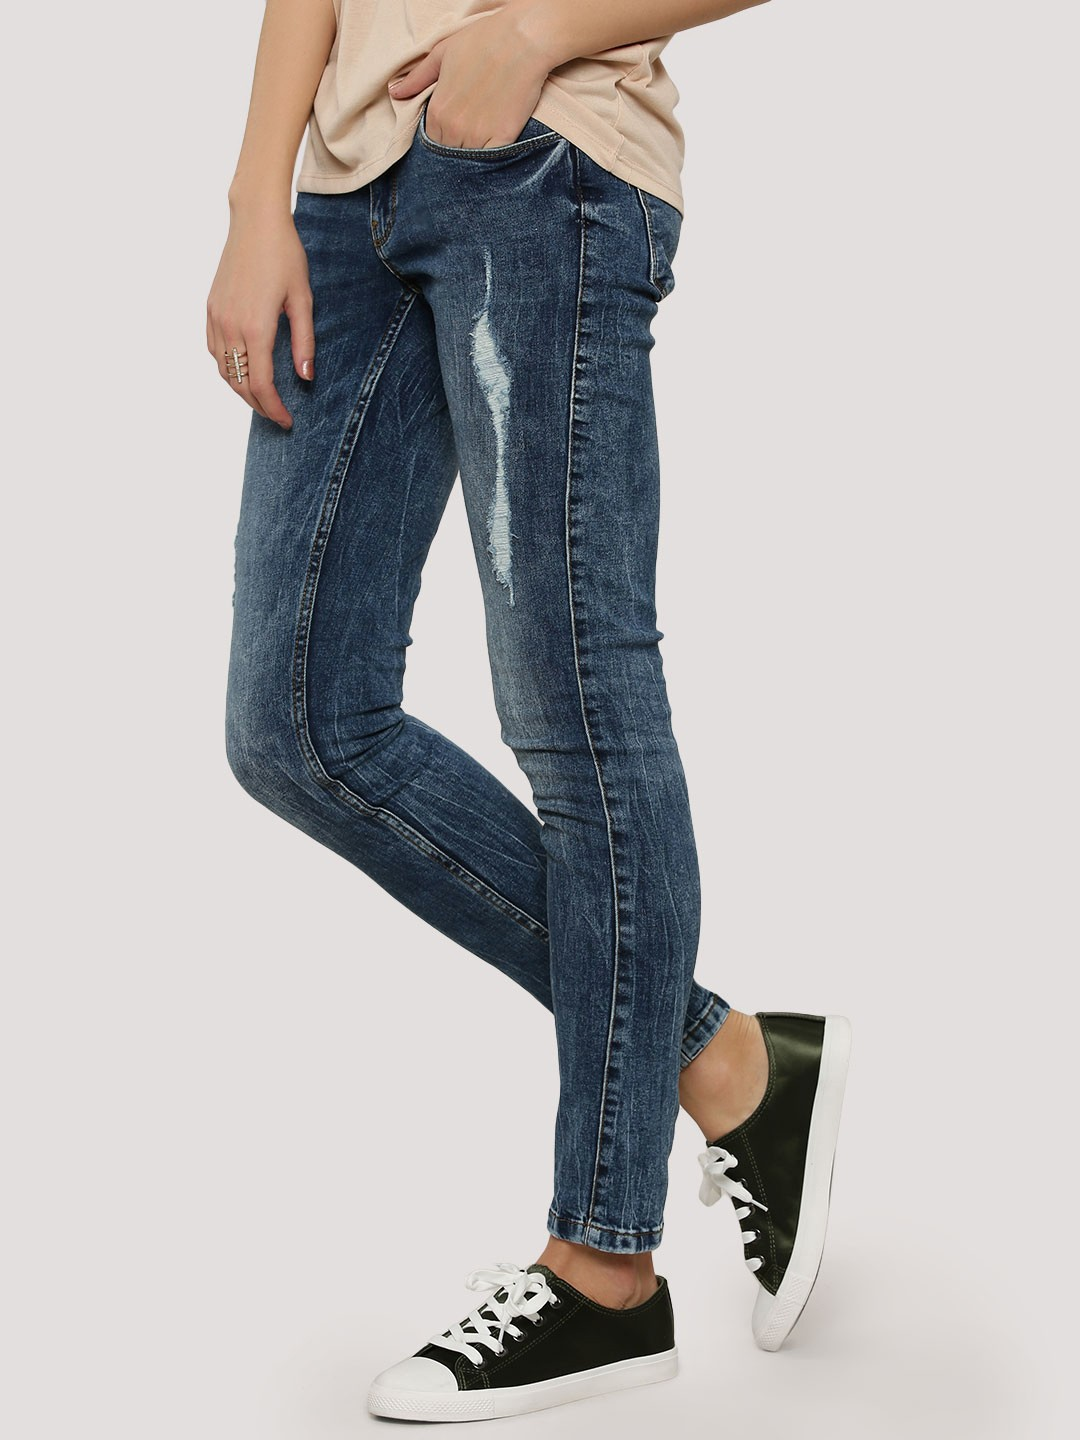 Buy VERO MODA Super Skinny Jeans For Women - Women's Dark Blue ...